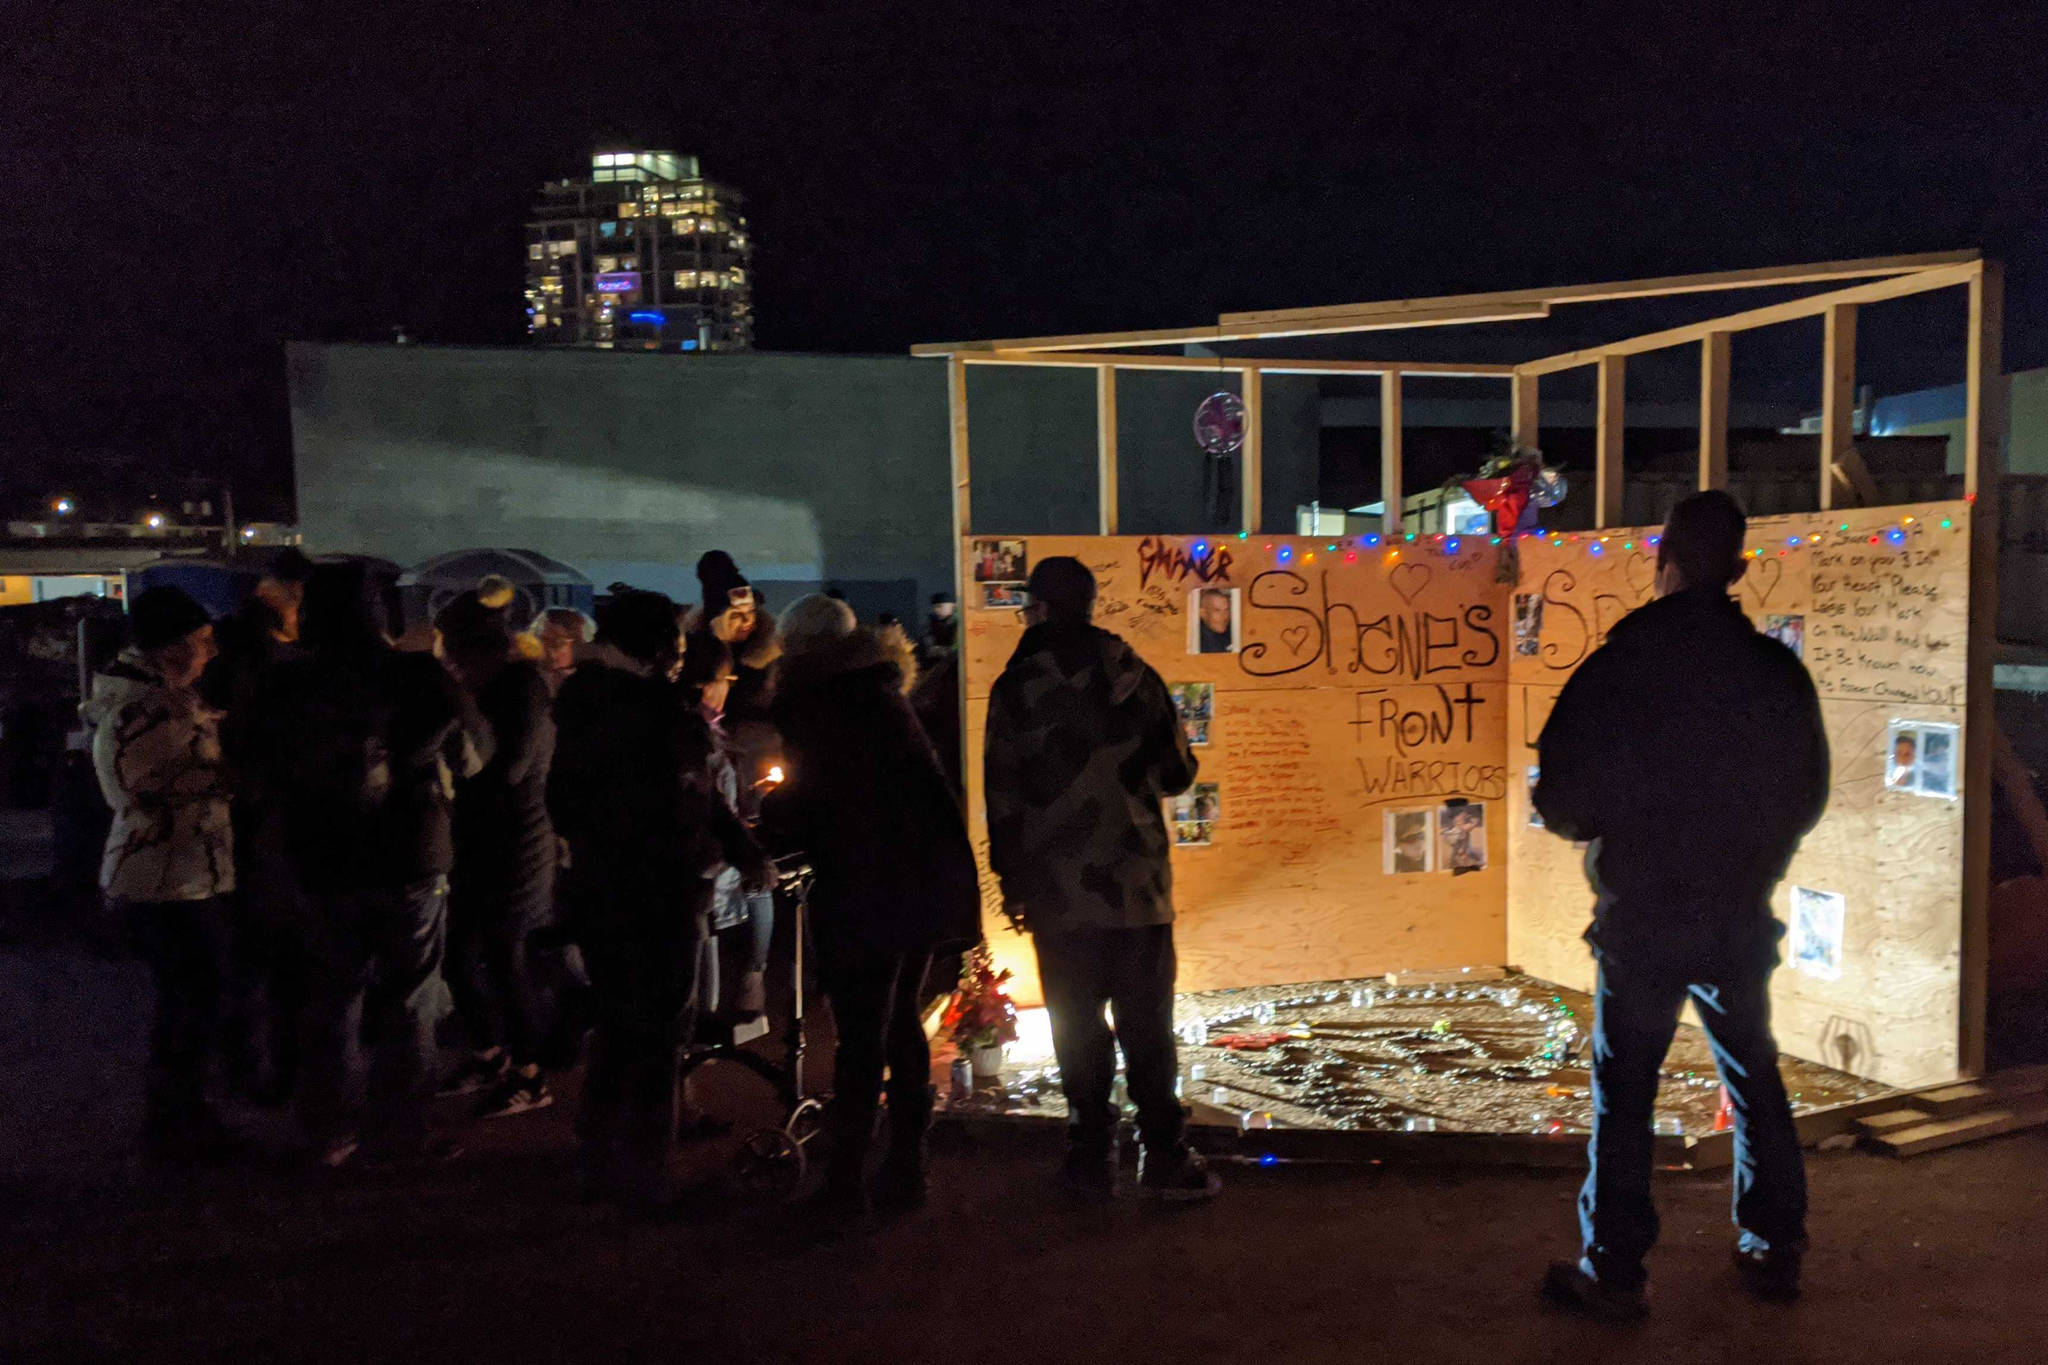 'I'm so angry I can't even cry right now' Candlelight vigil held for Kelowna man who died at homeless camp